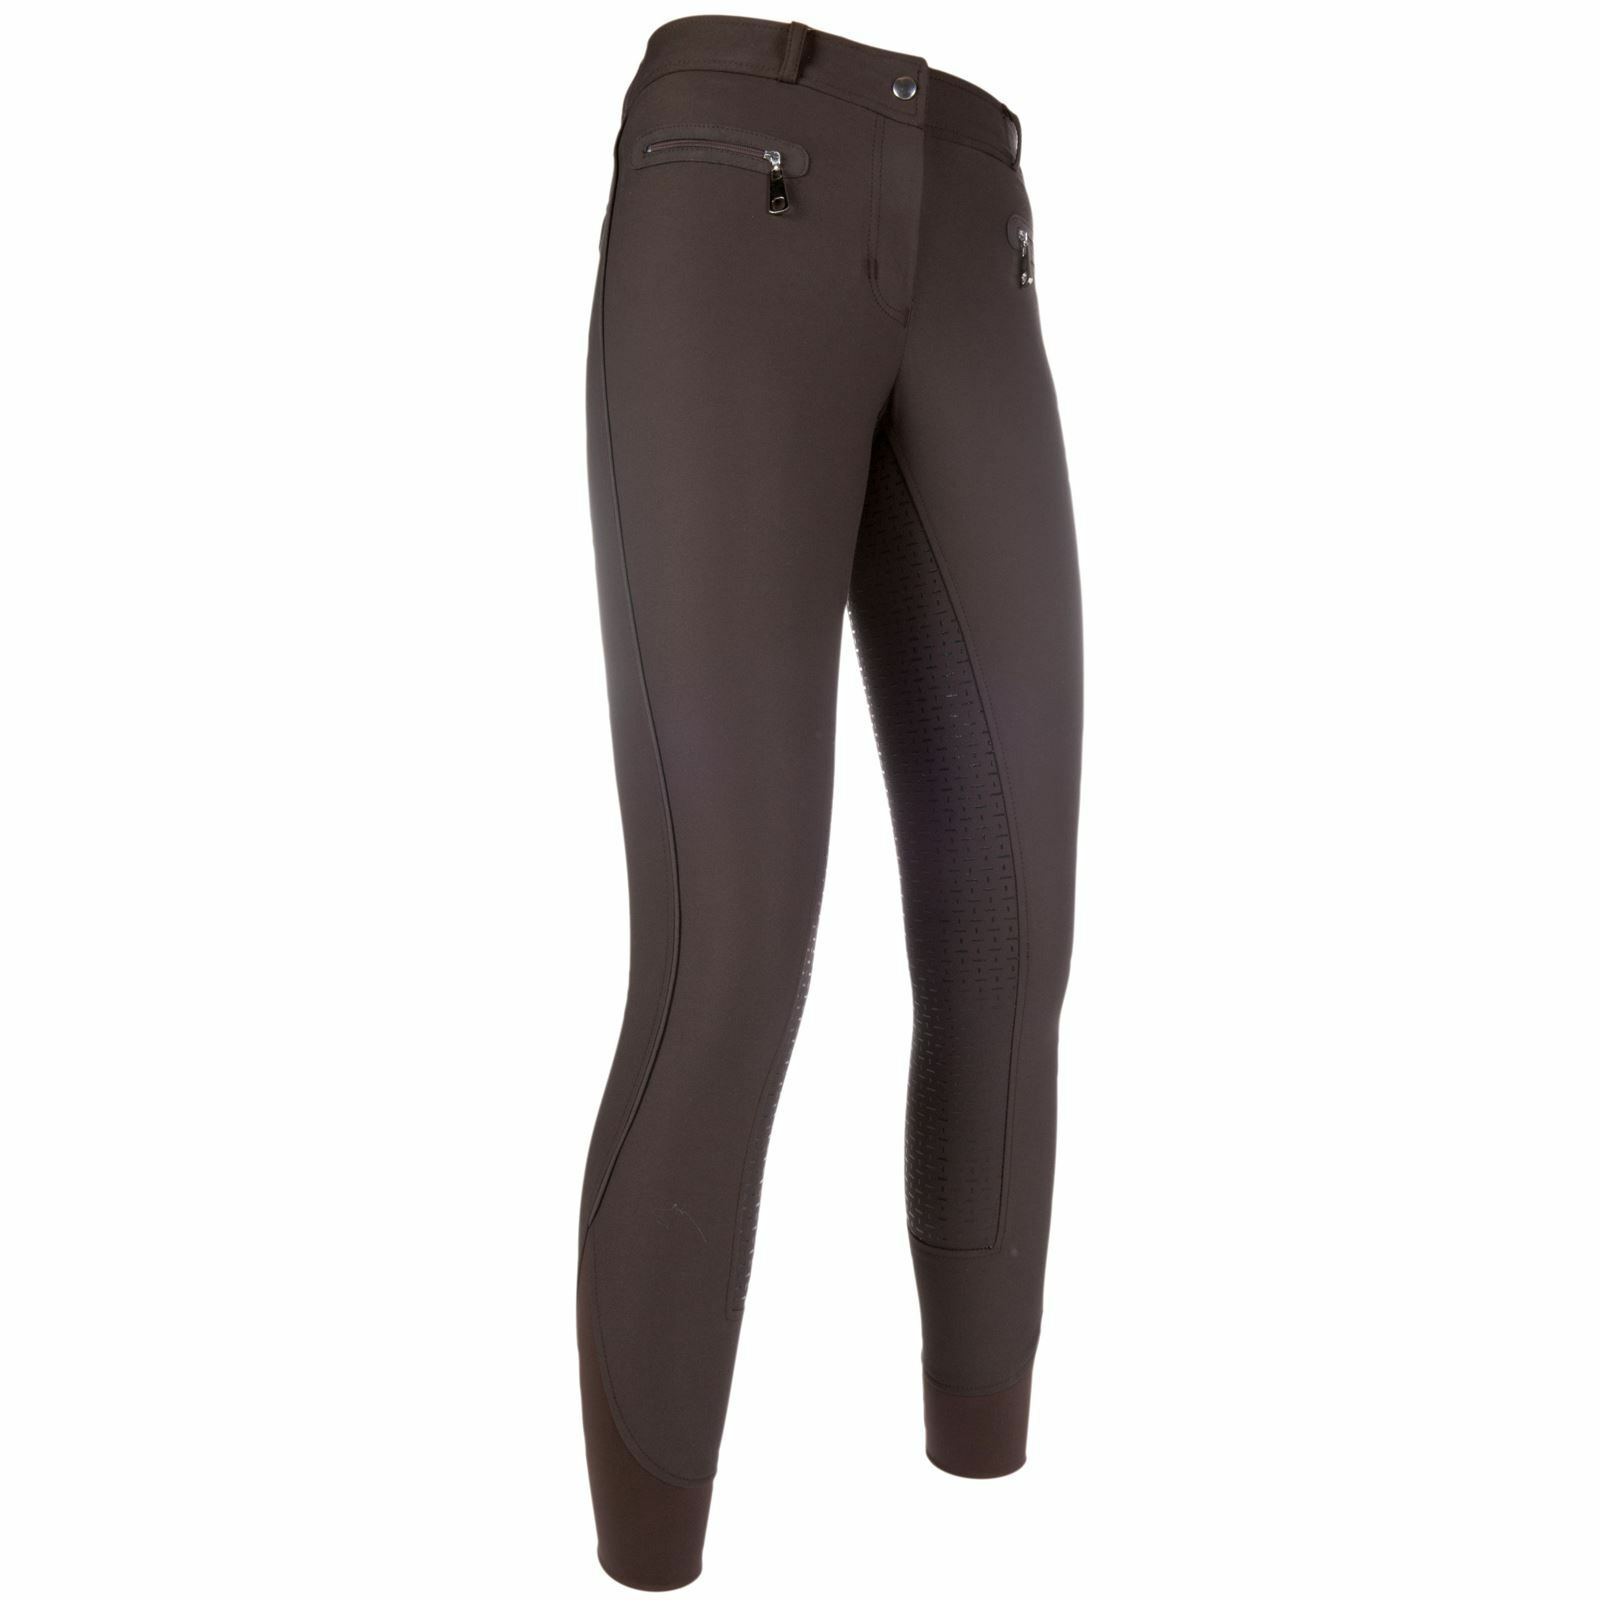 Lauria Garelli Moena May Ladies Country Full Seat Silicone Horse  Riding Breeches  choose your favorite